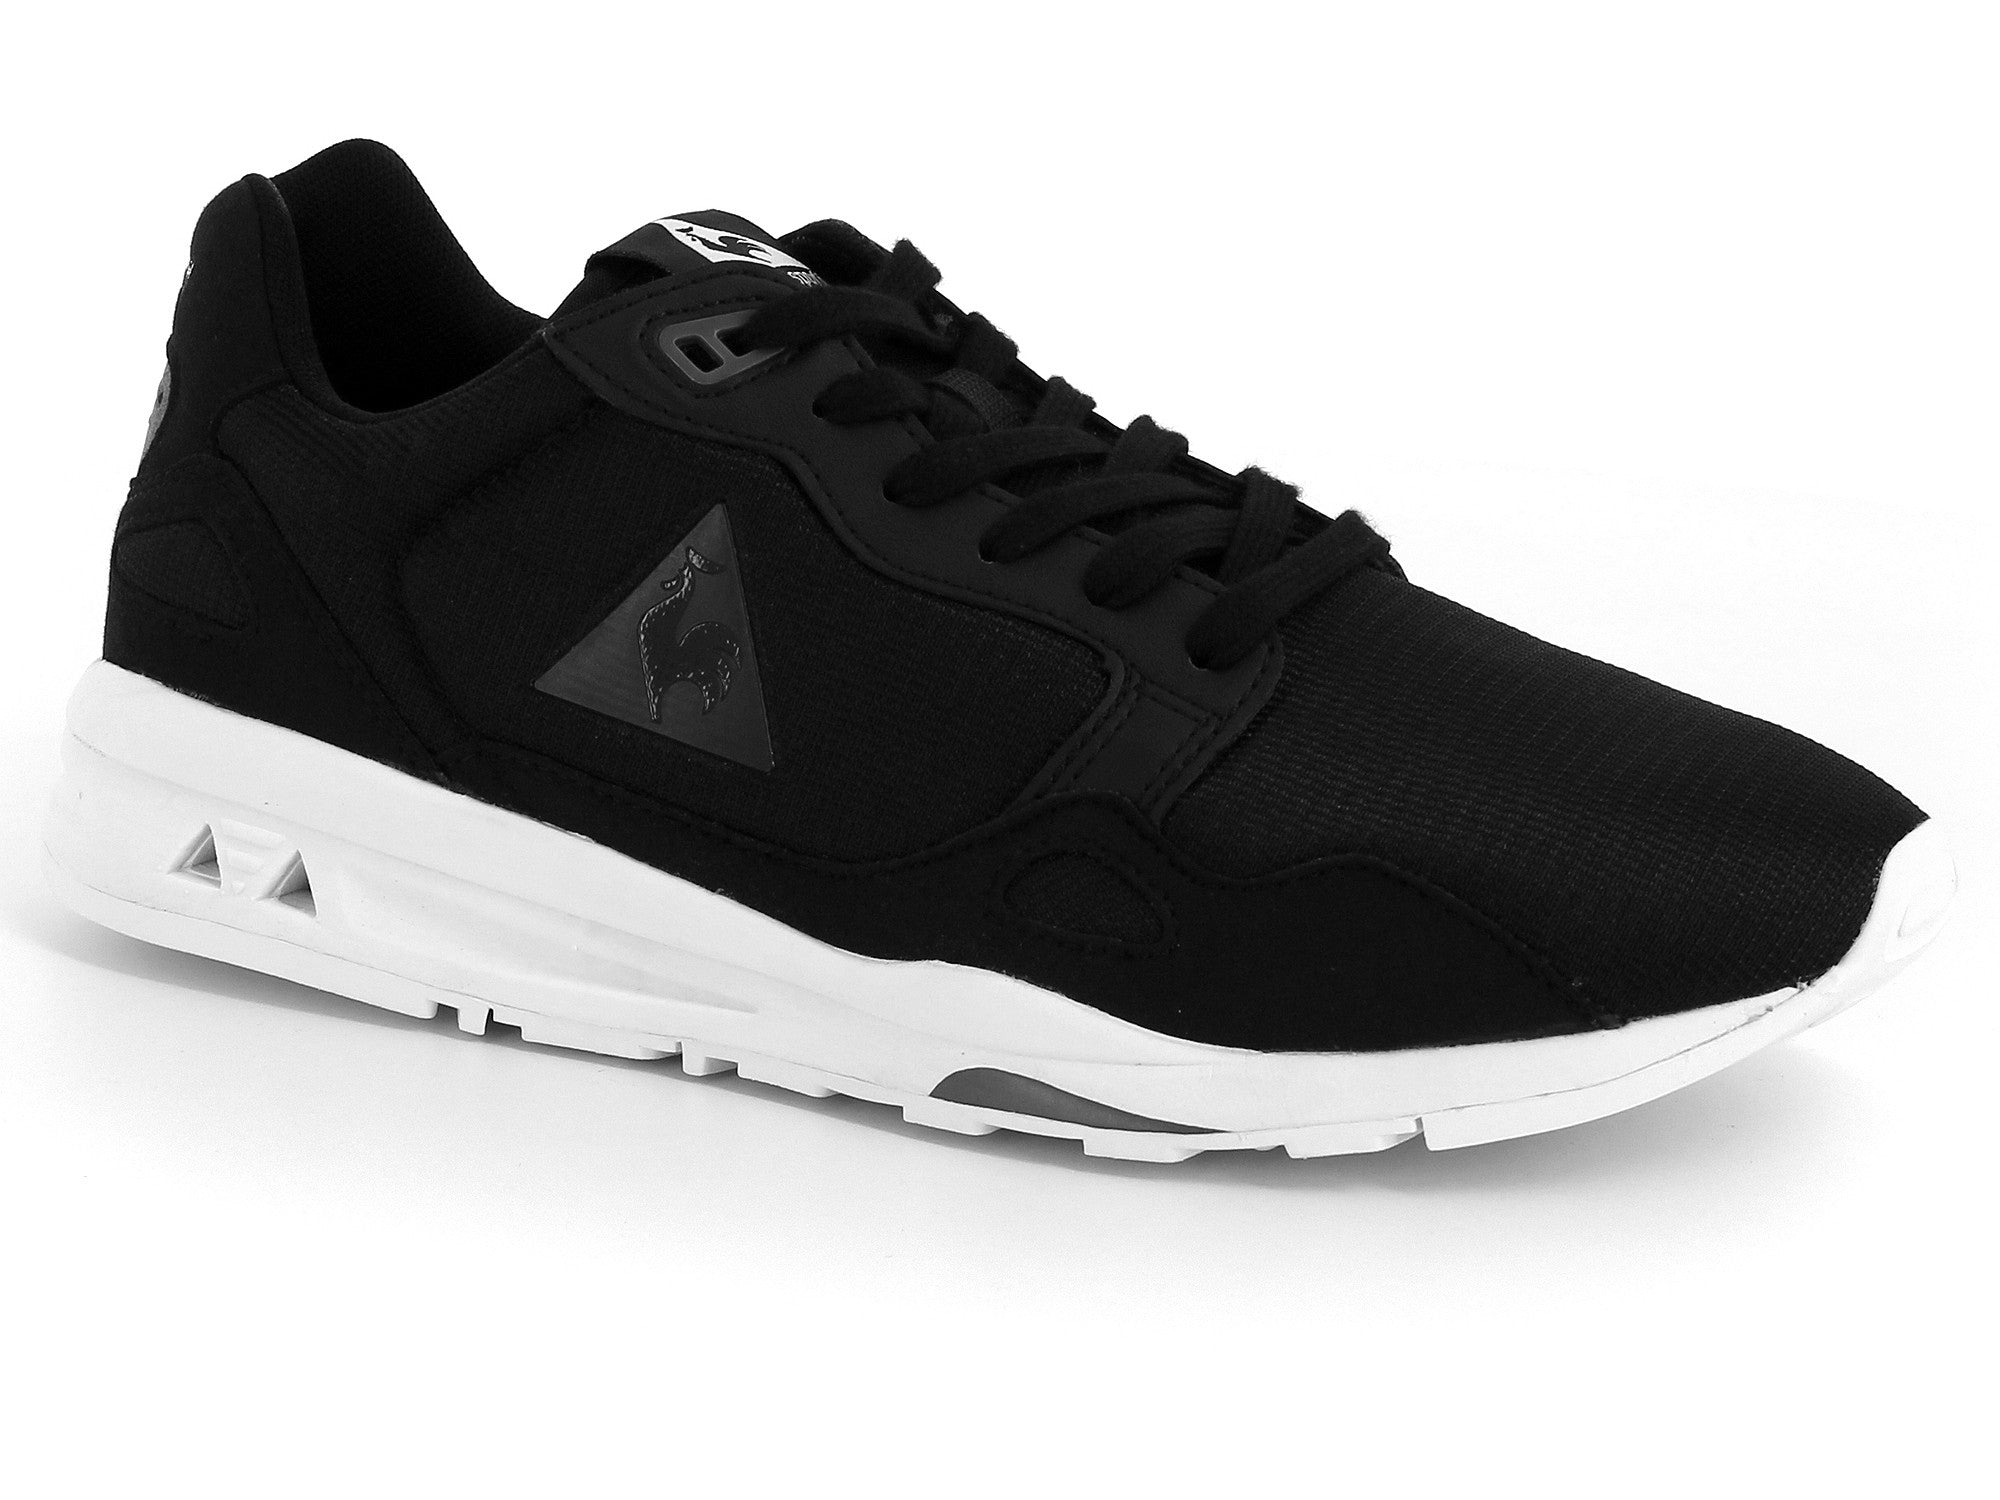 LCS R900 Monochrome - Black